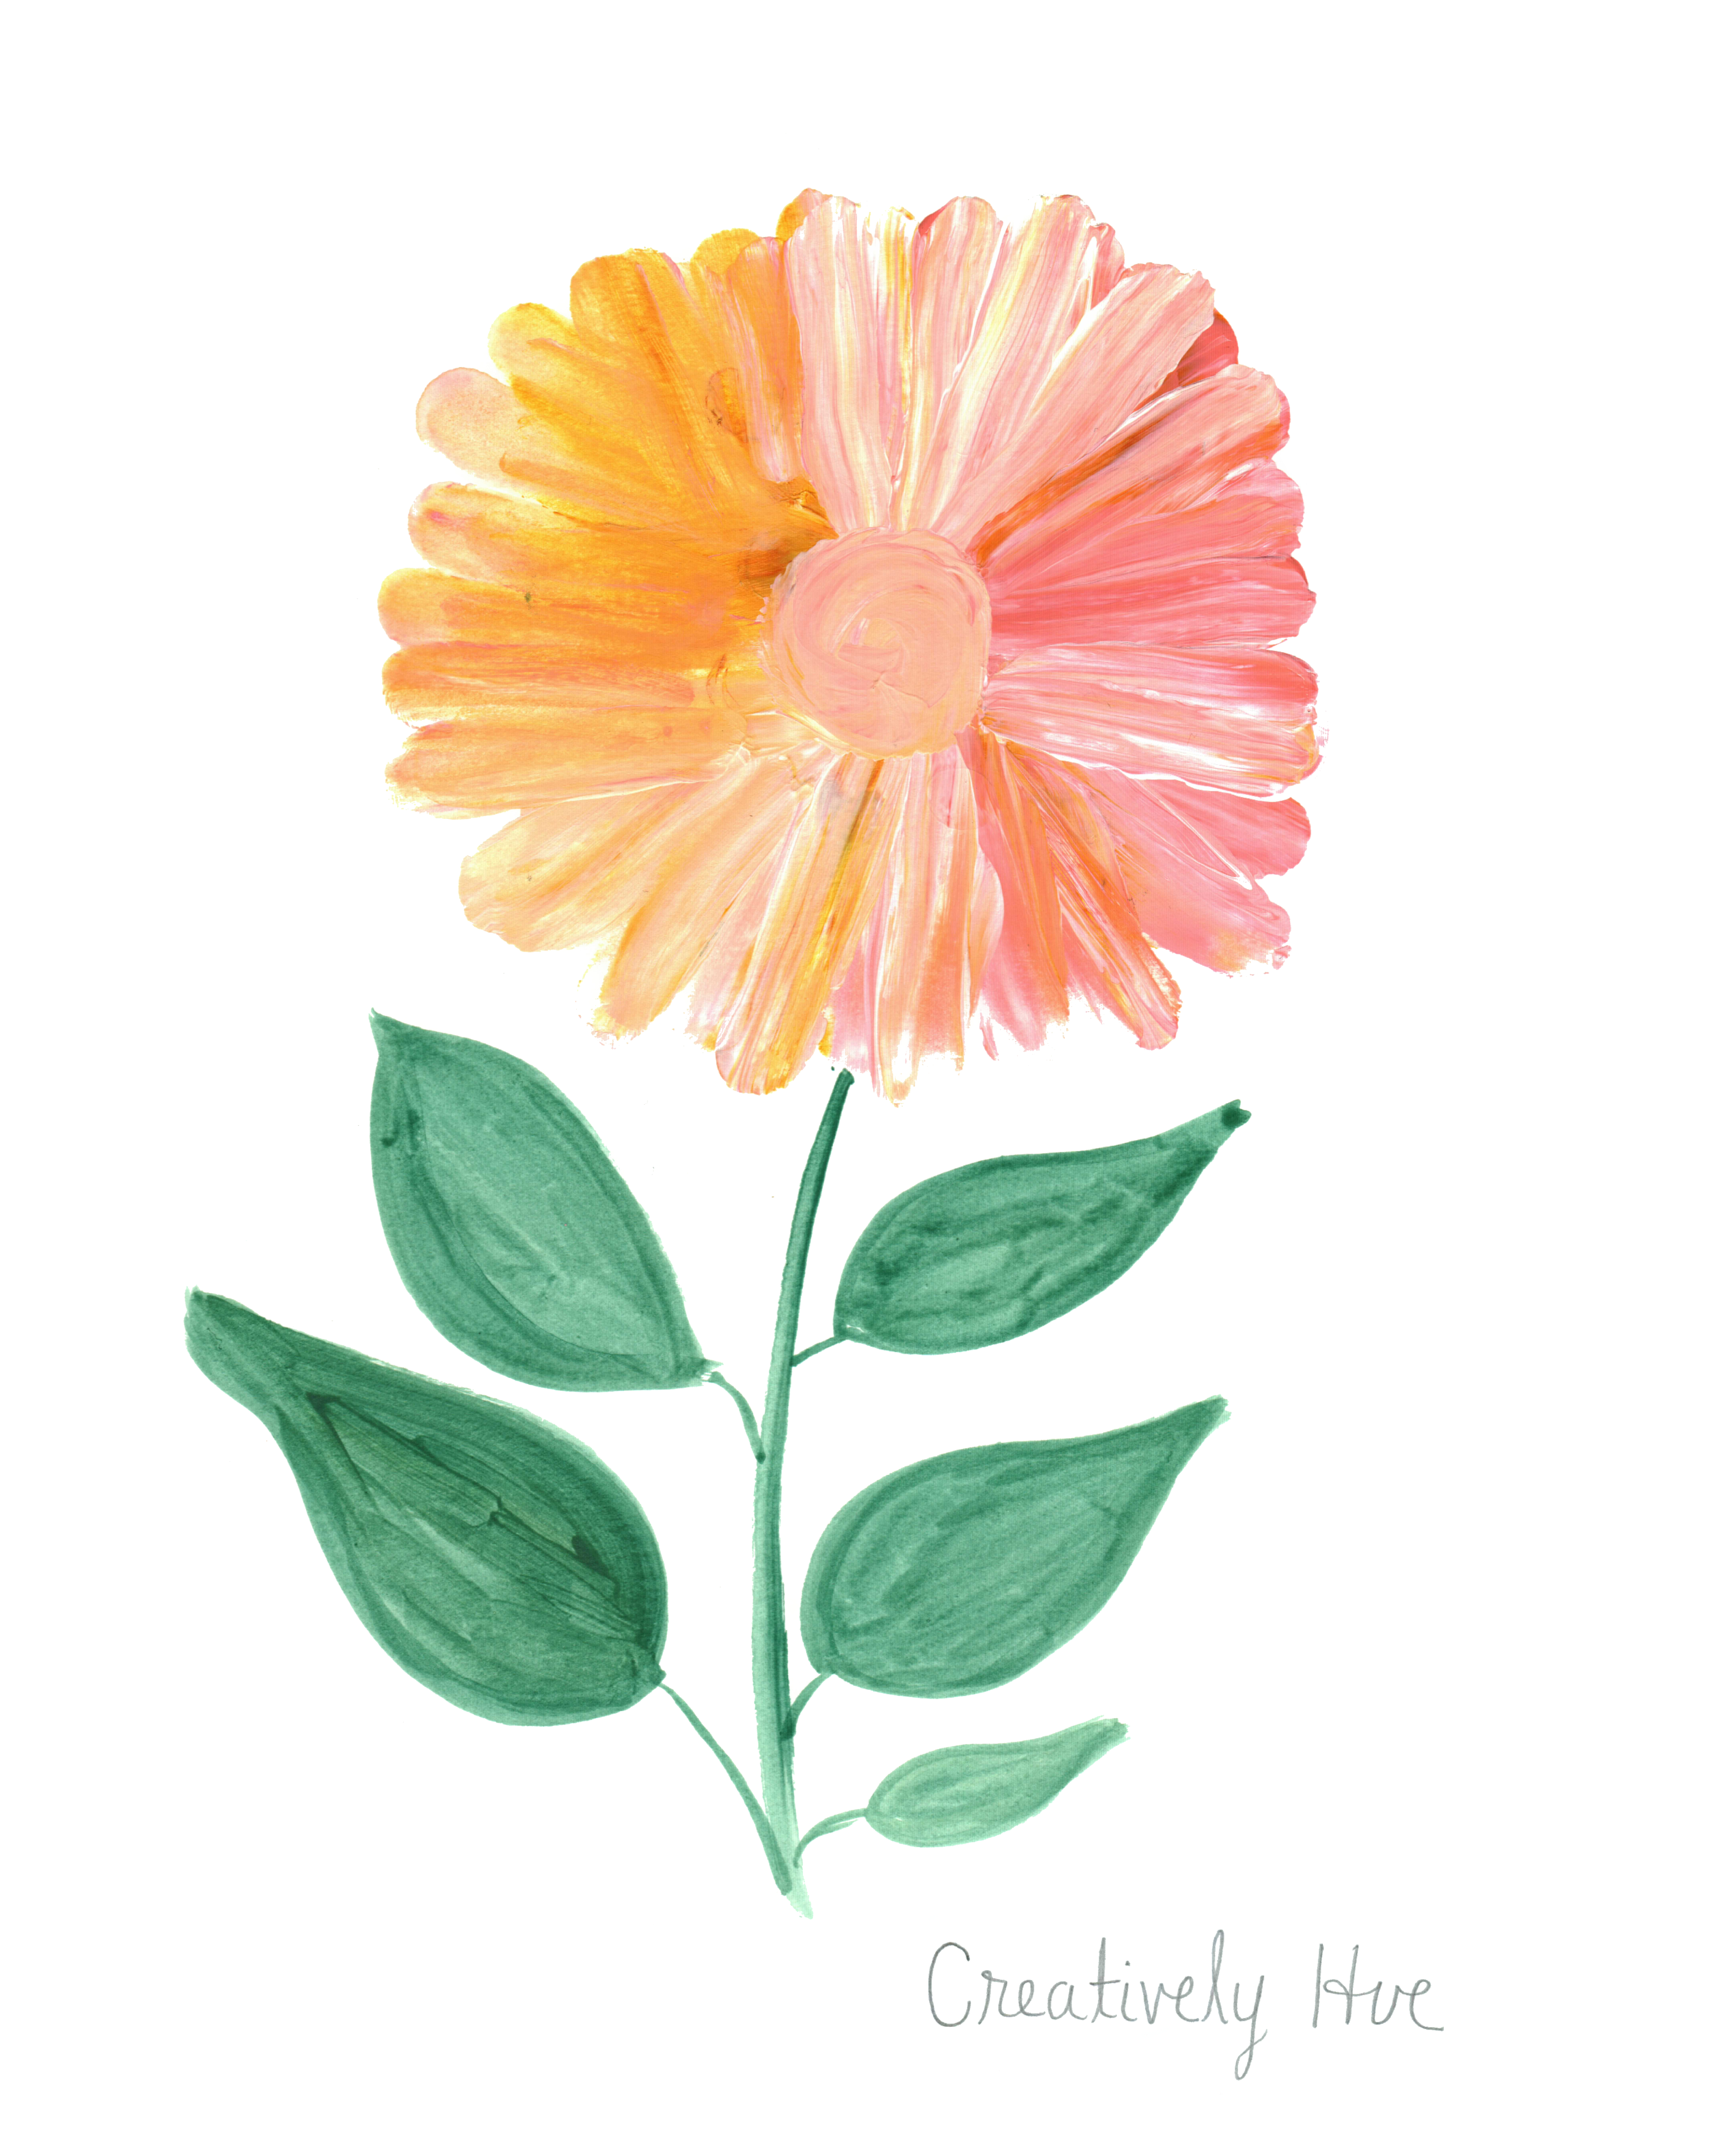 This post contains a list of art resources inculding a sunflower fingerpainting idea